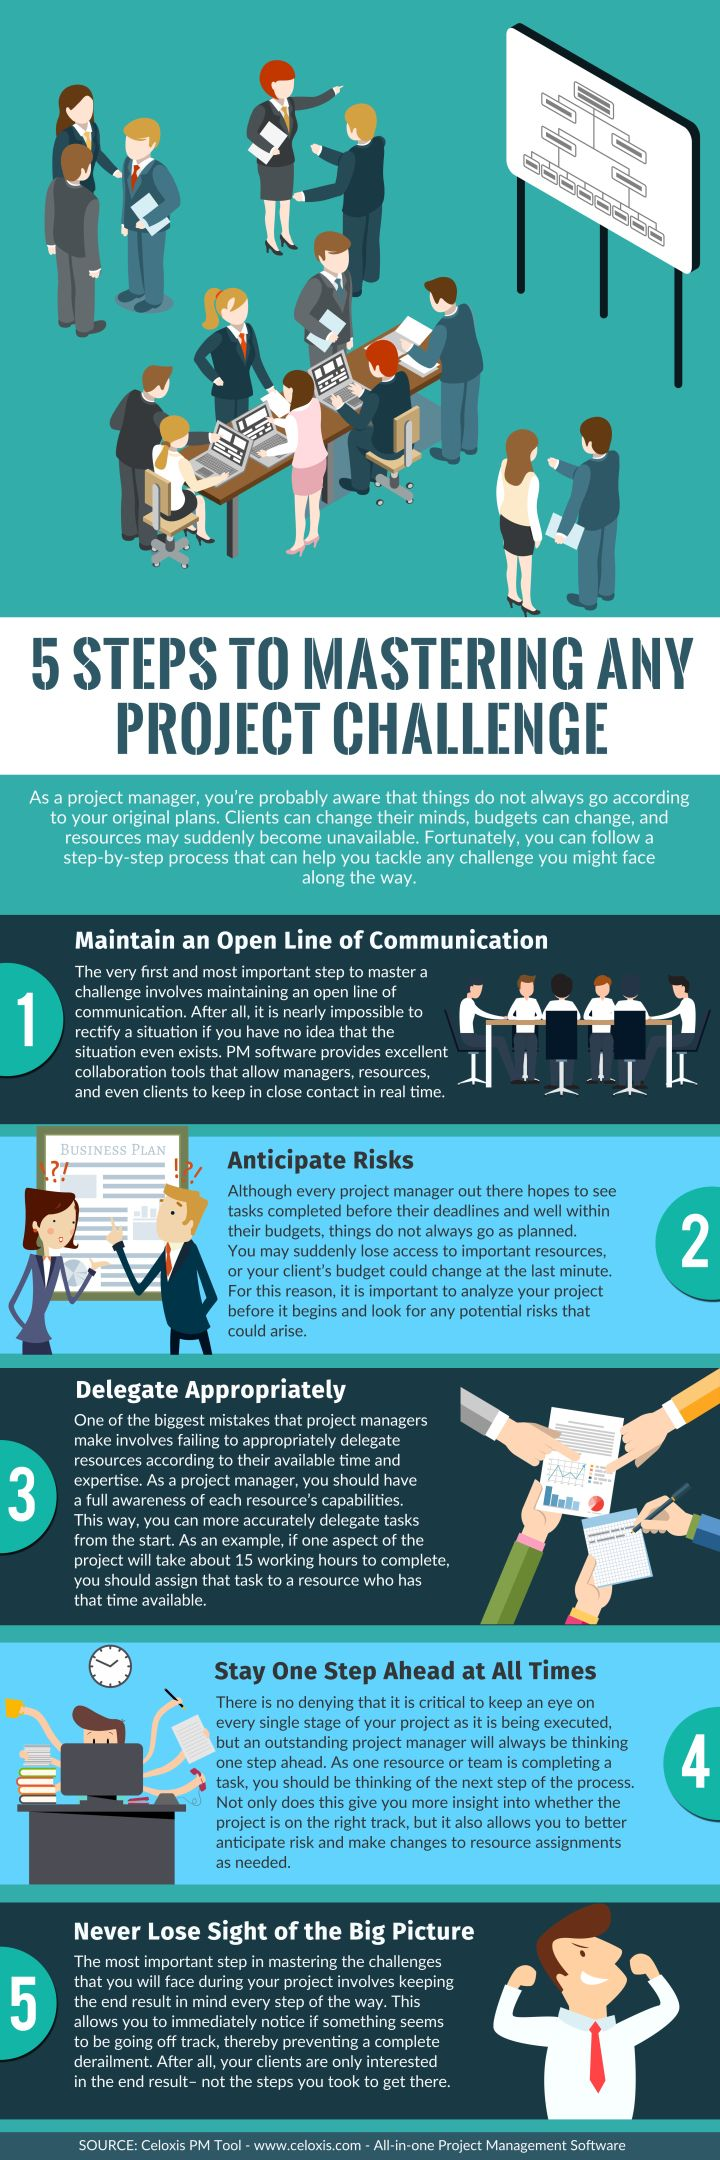 best images about celoxis project management software on infographic 5 steps to mastering any project challenge